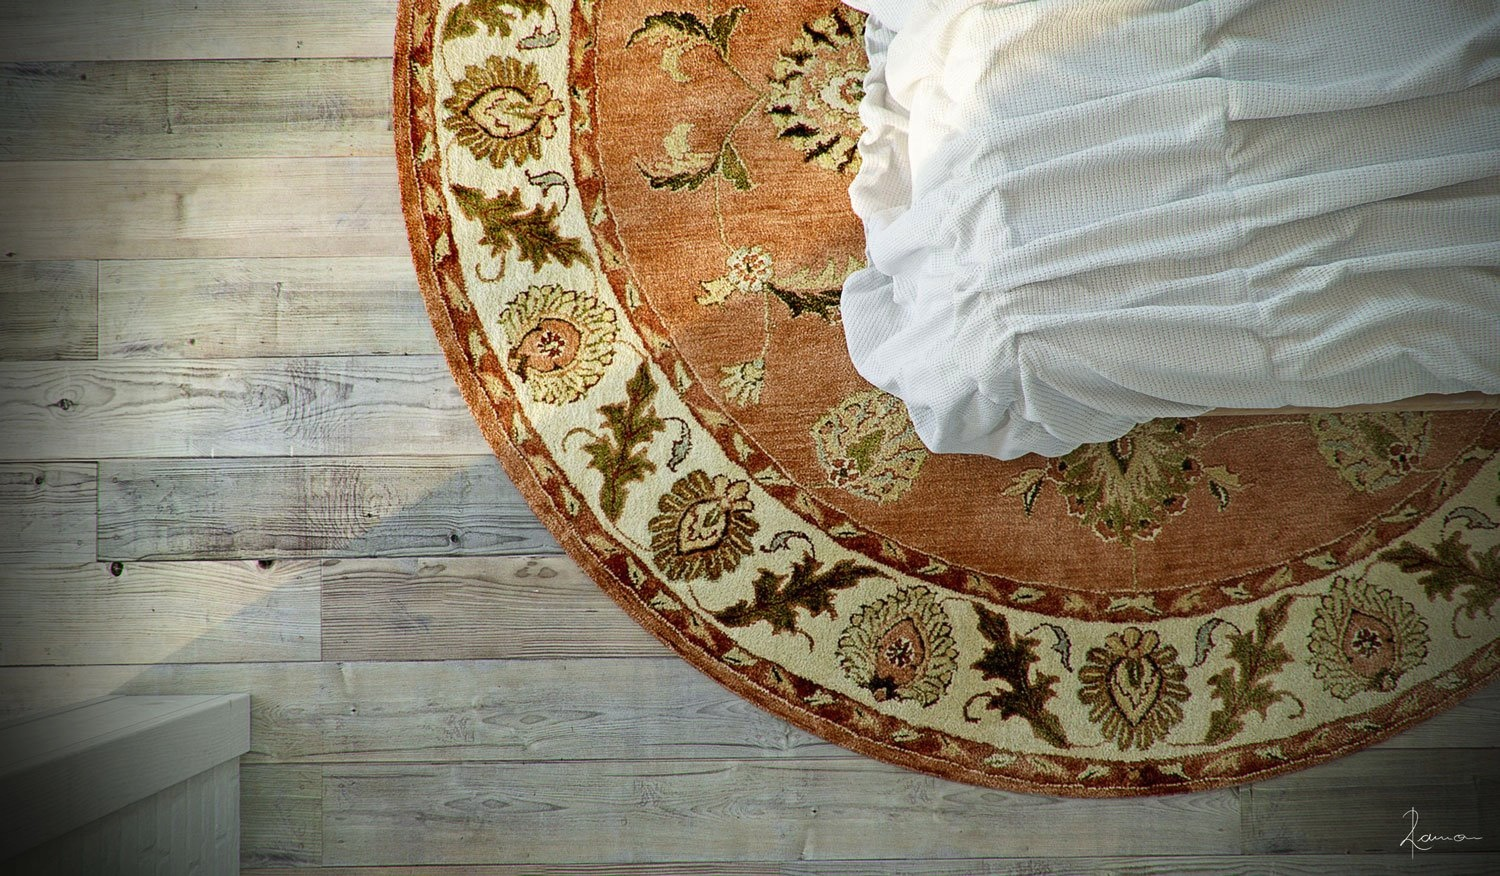 Industrial Bedroom Give You Artistic Feeling: Round Rug